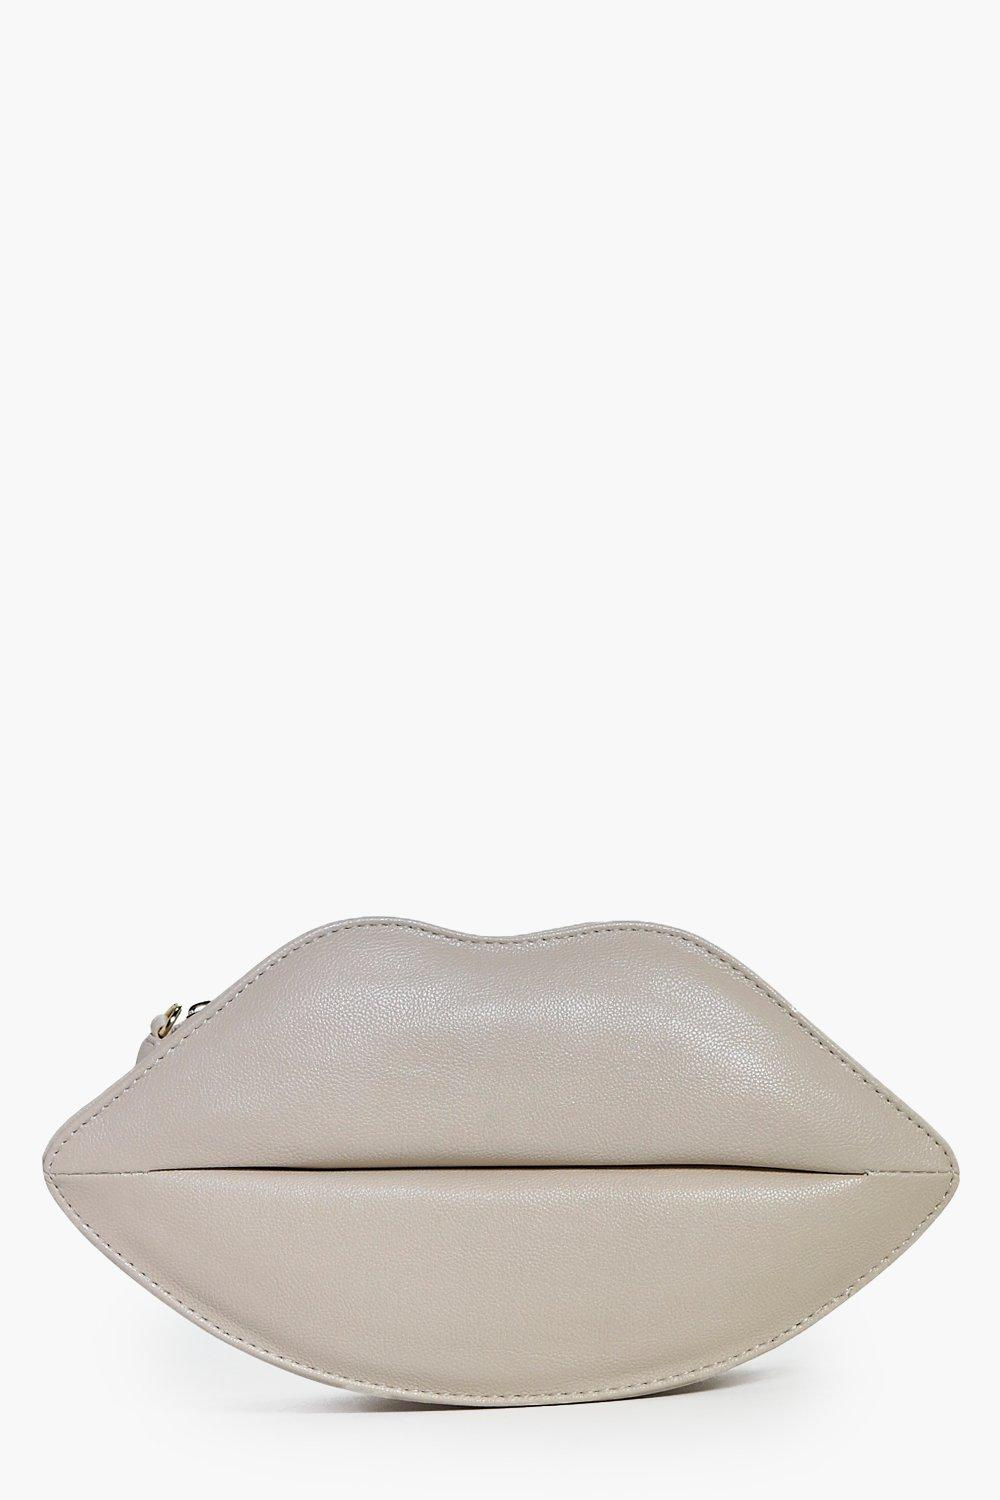 Sophia Lips Structured Clutch